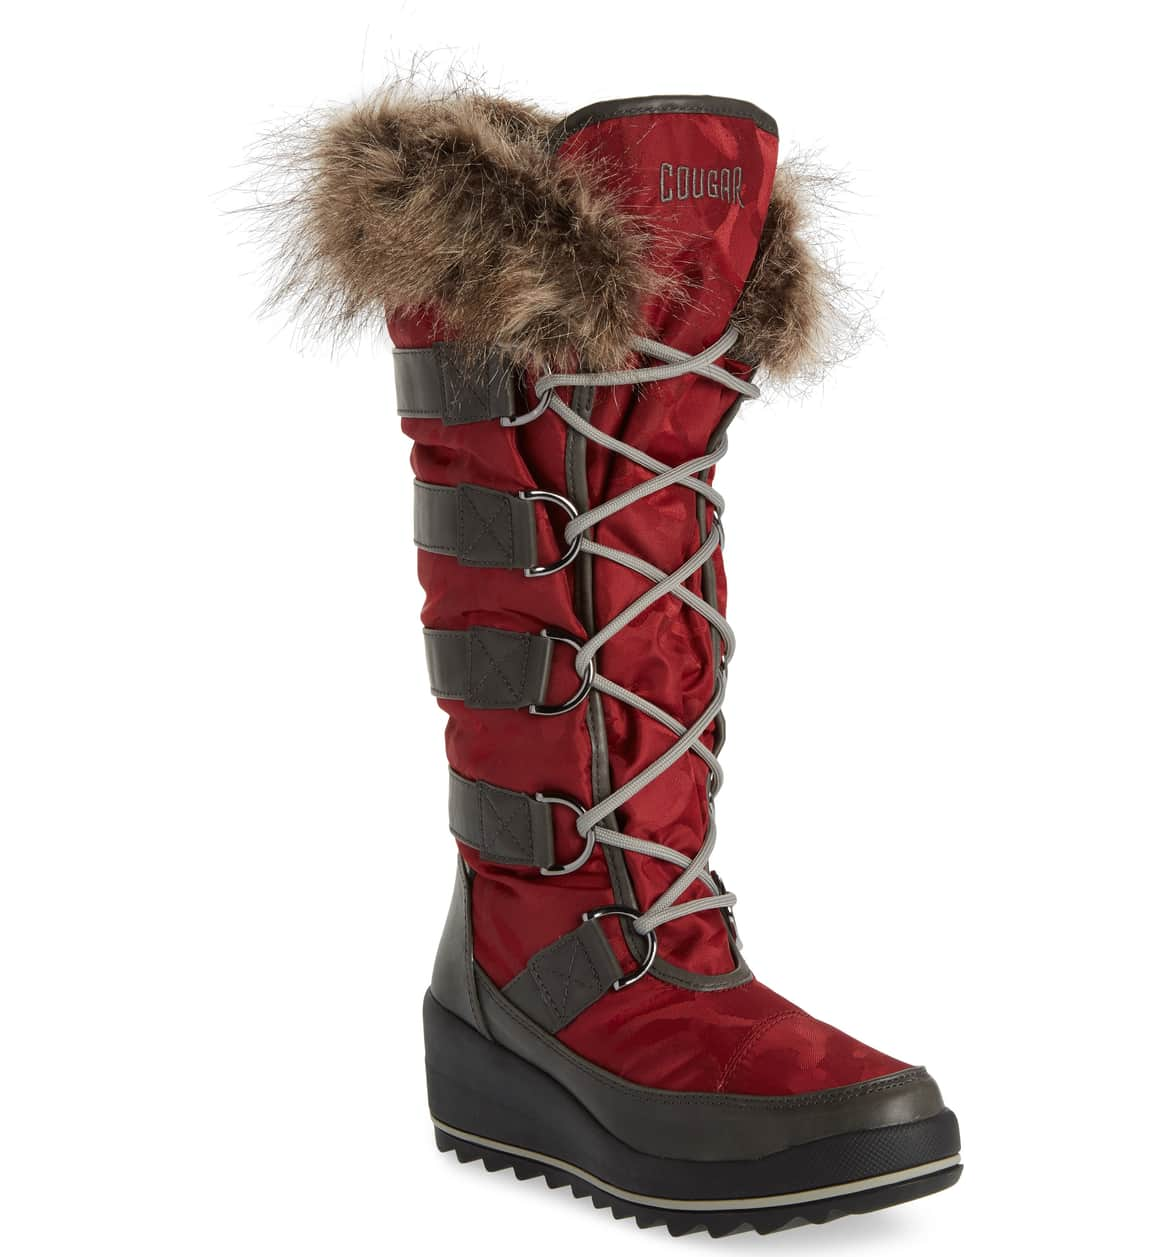 Stylish Warm Winter Boots that Grab the Eye, women's fur trim snow boots, Cougar Lancaster Waterproof Snow Boot, red fur trim snow boots